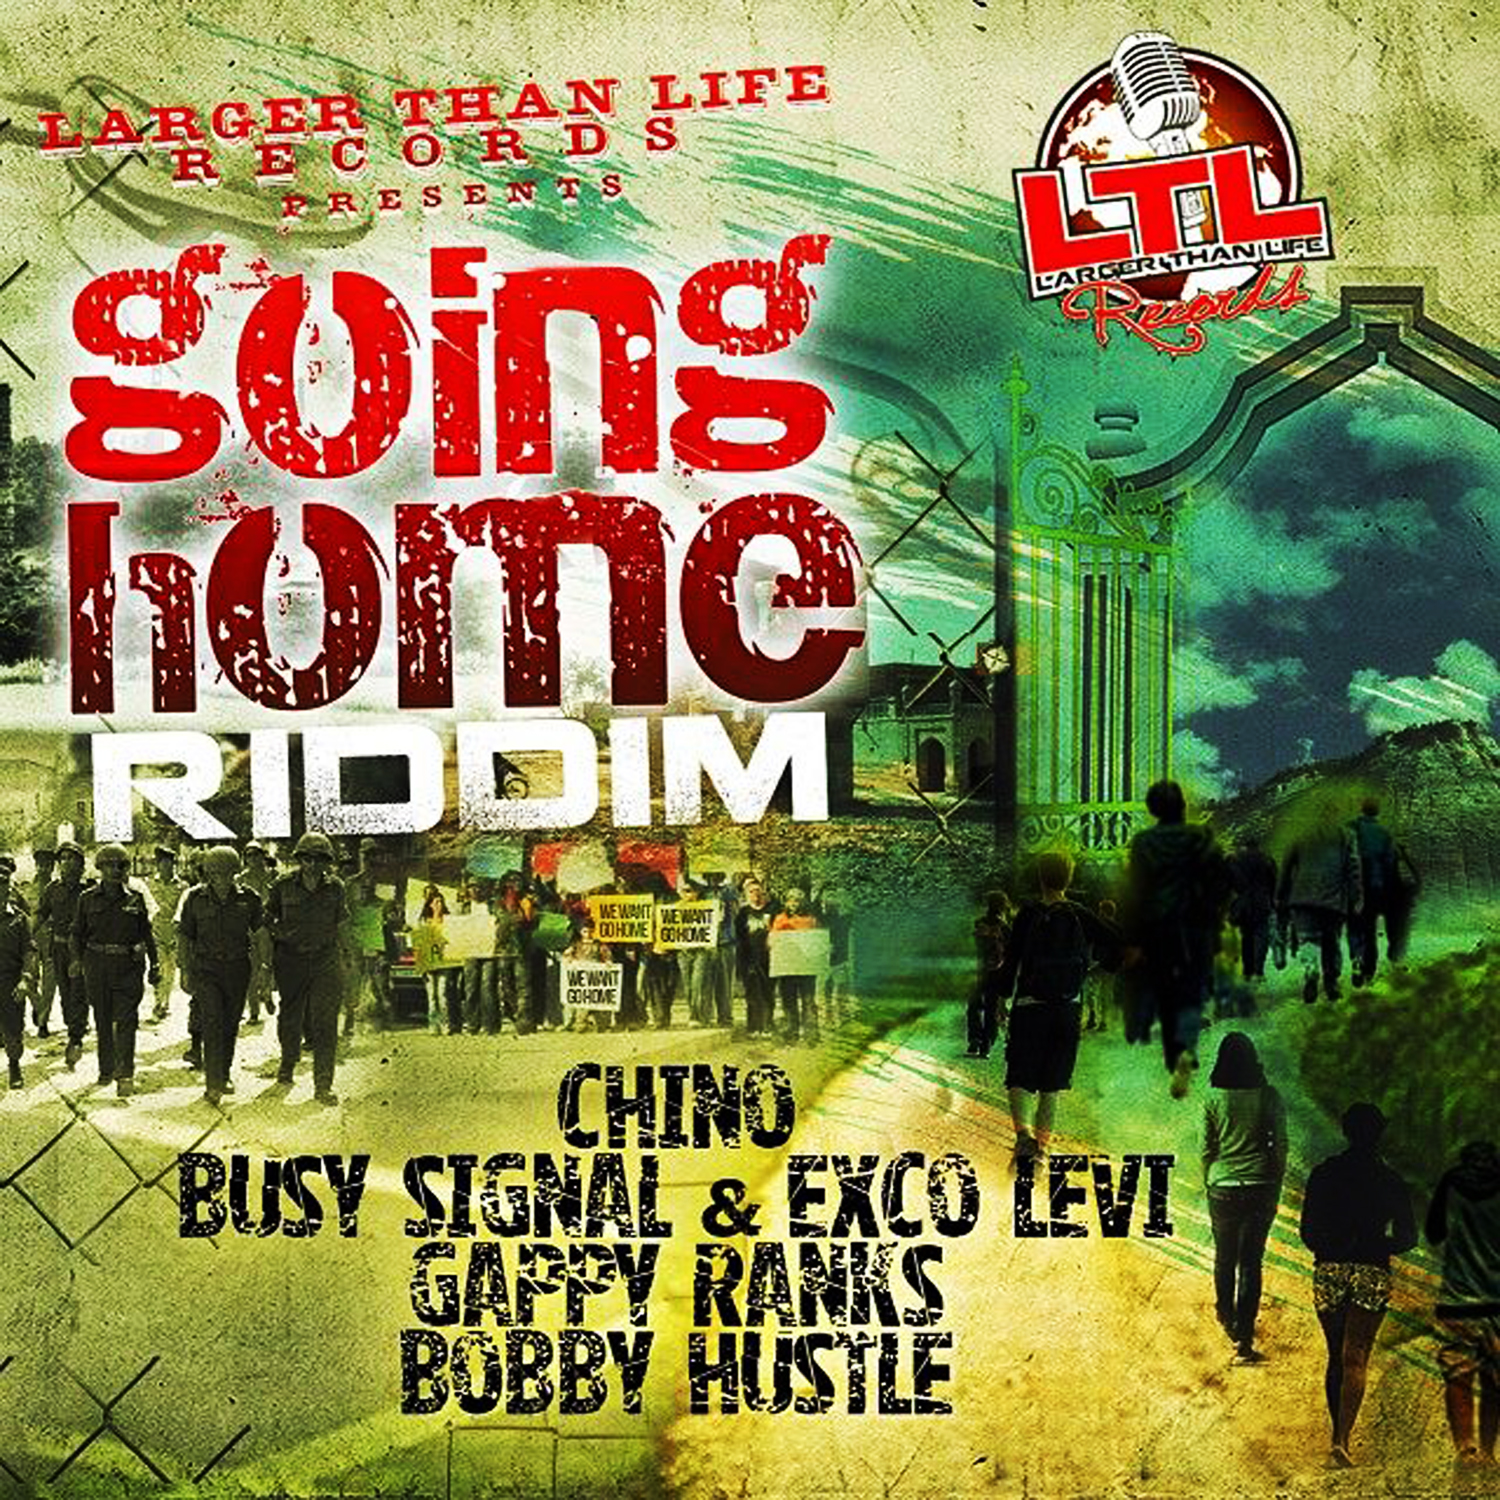 CHINO-LARGER-THAN-LIFE-GOING-HOME-RIDDIM-LARGER-THAN-LIFE-RECORDS-COVER